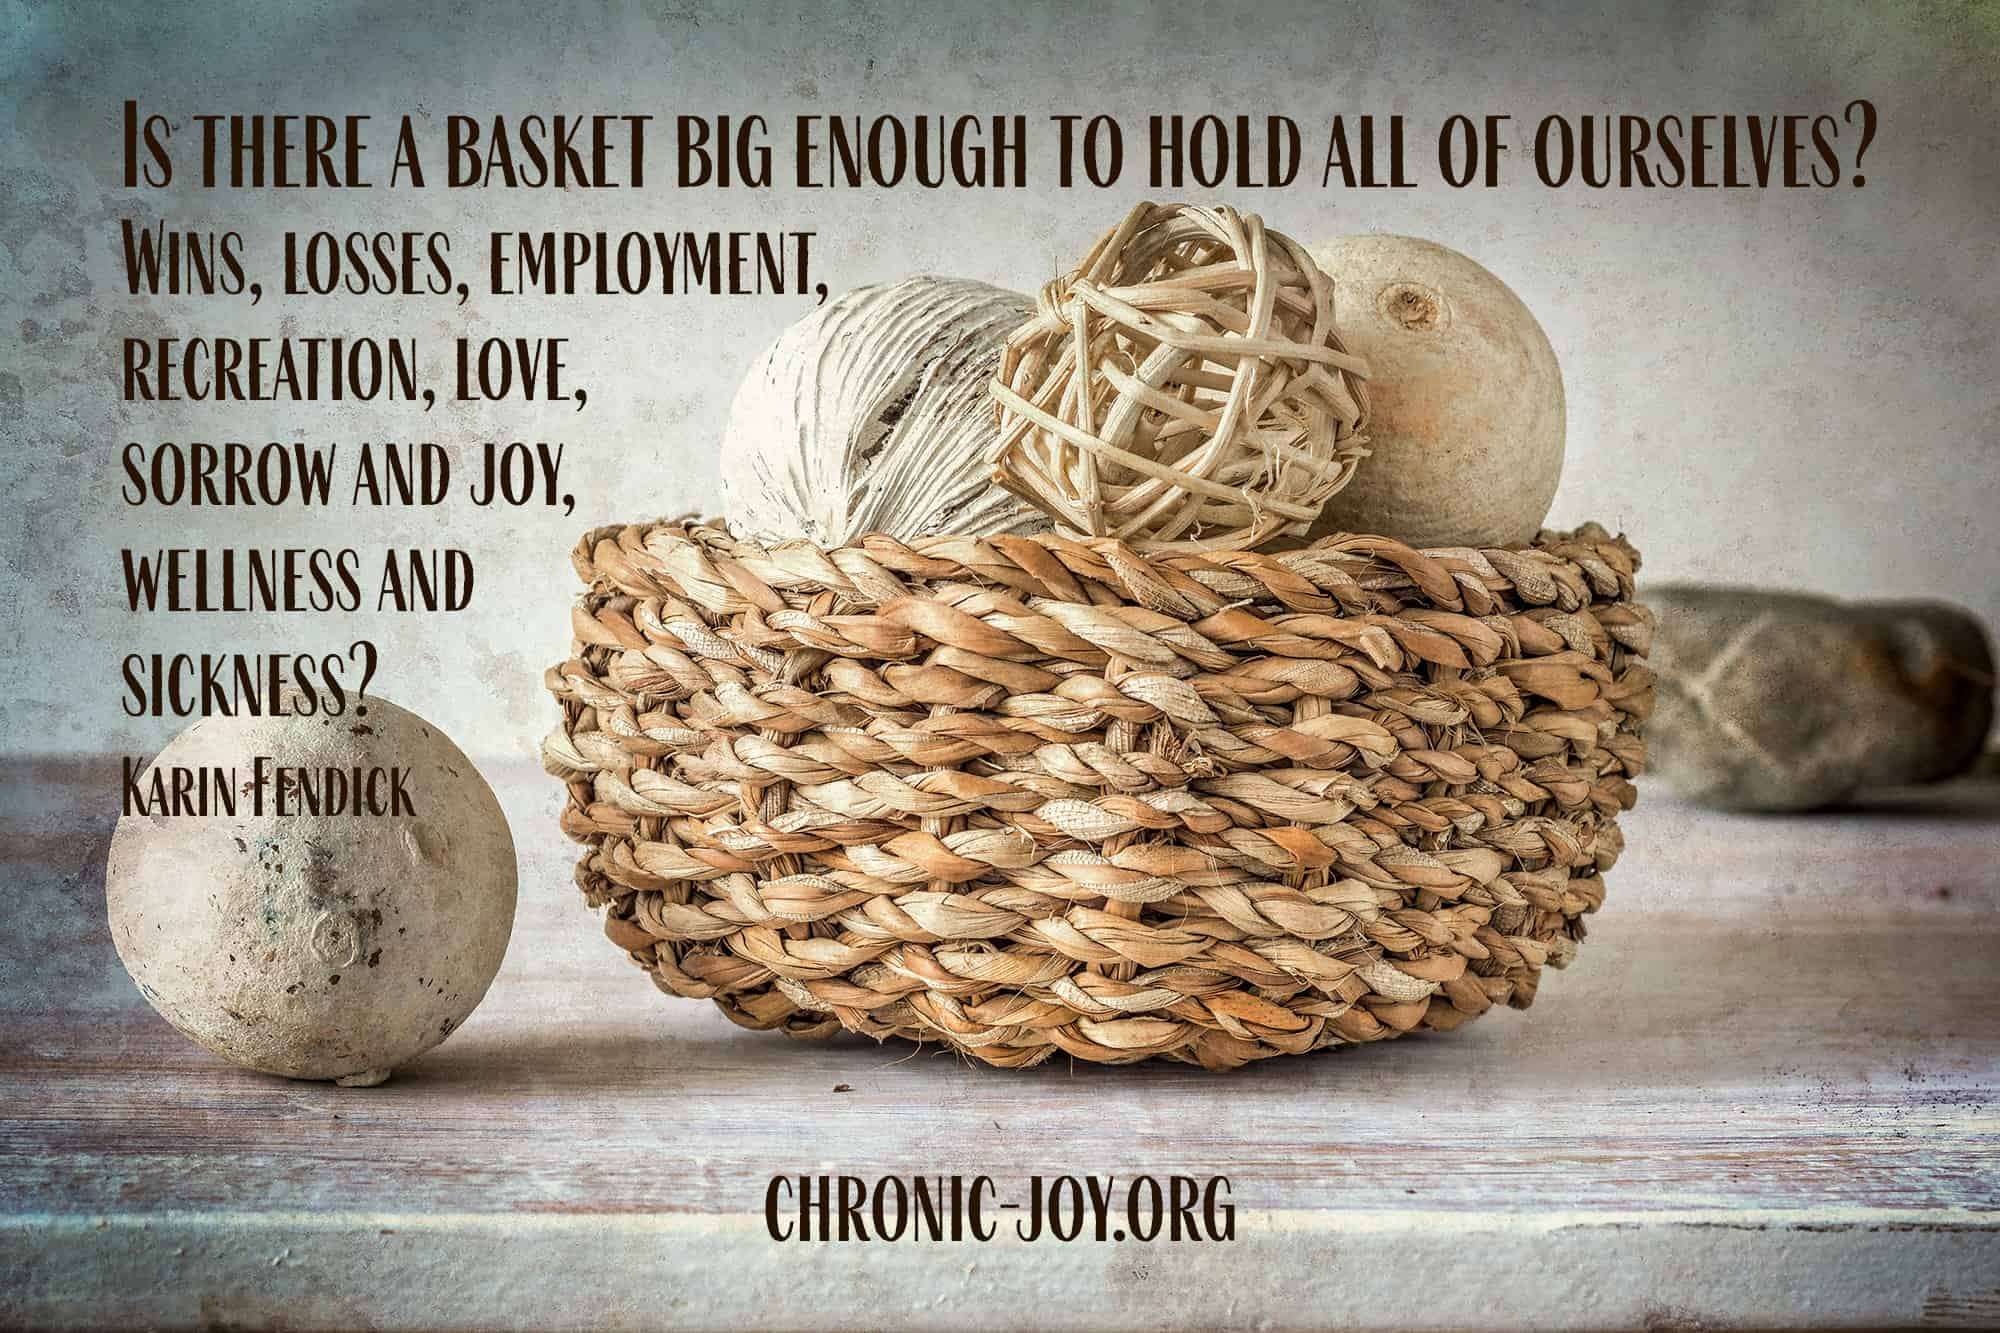 Is there a basket big enough to hold all of ourselves?